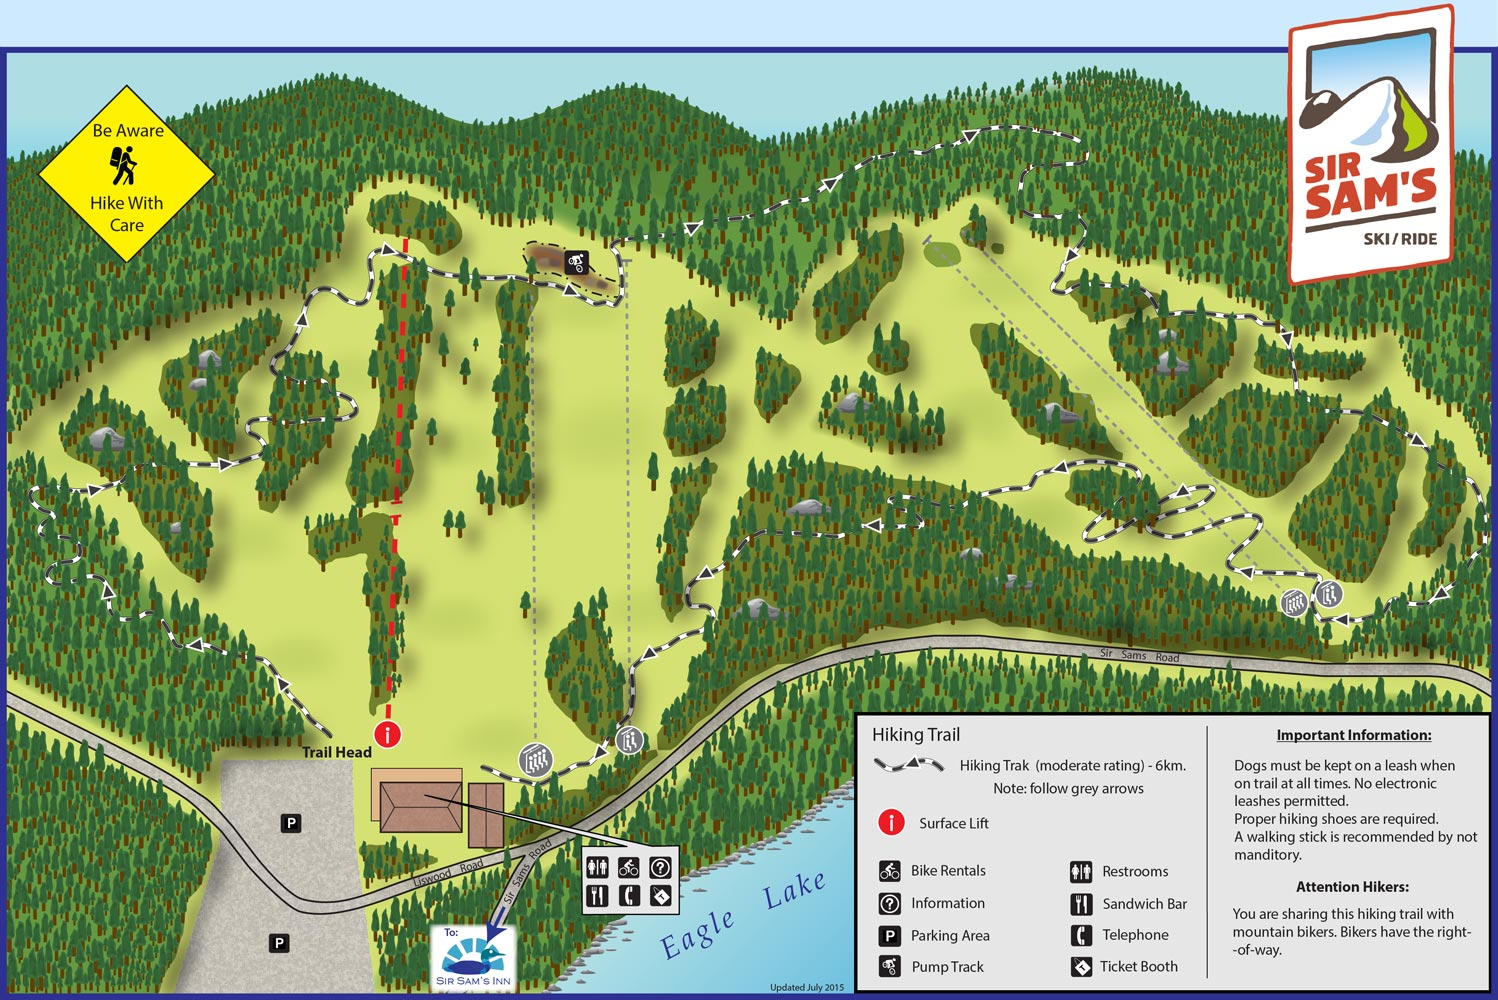 Map of Sir Sam's hiking trails